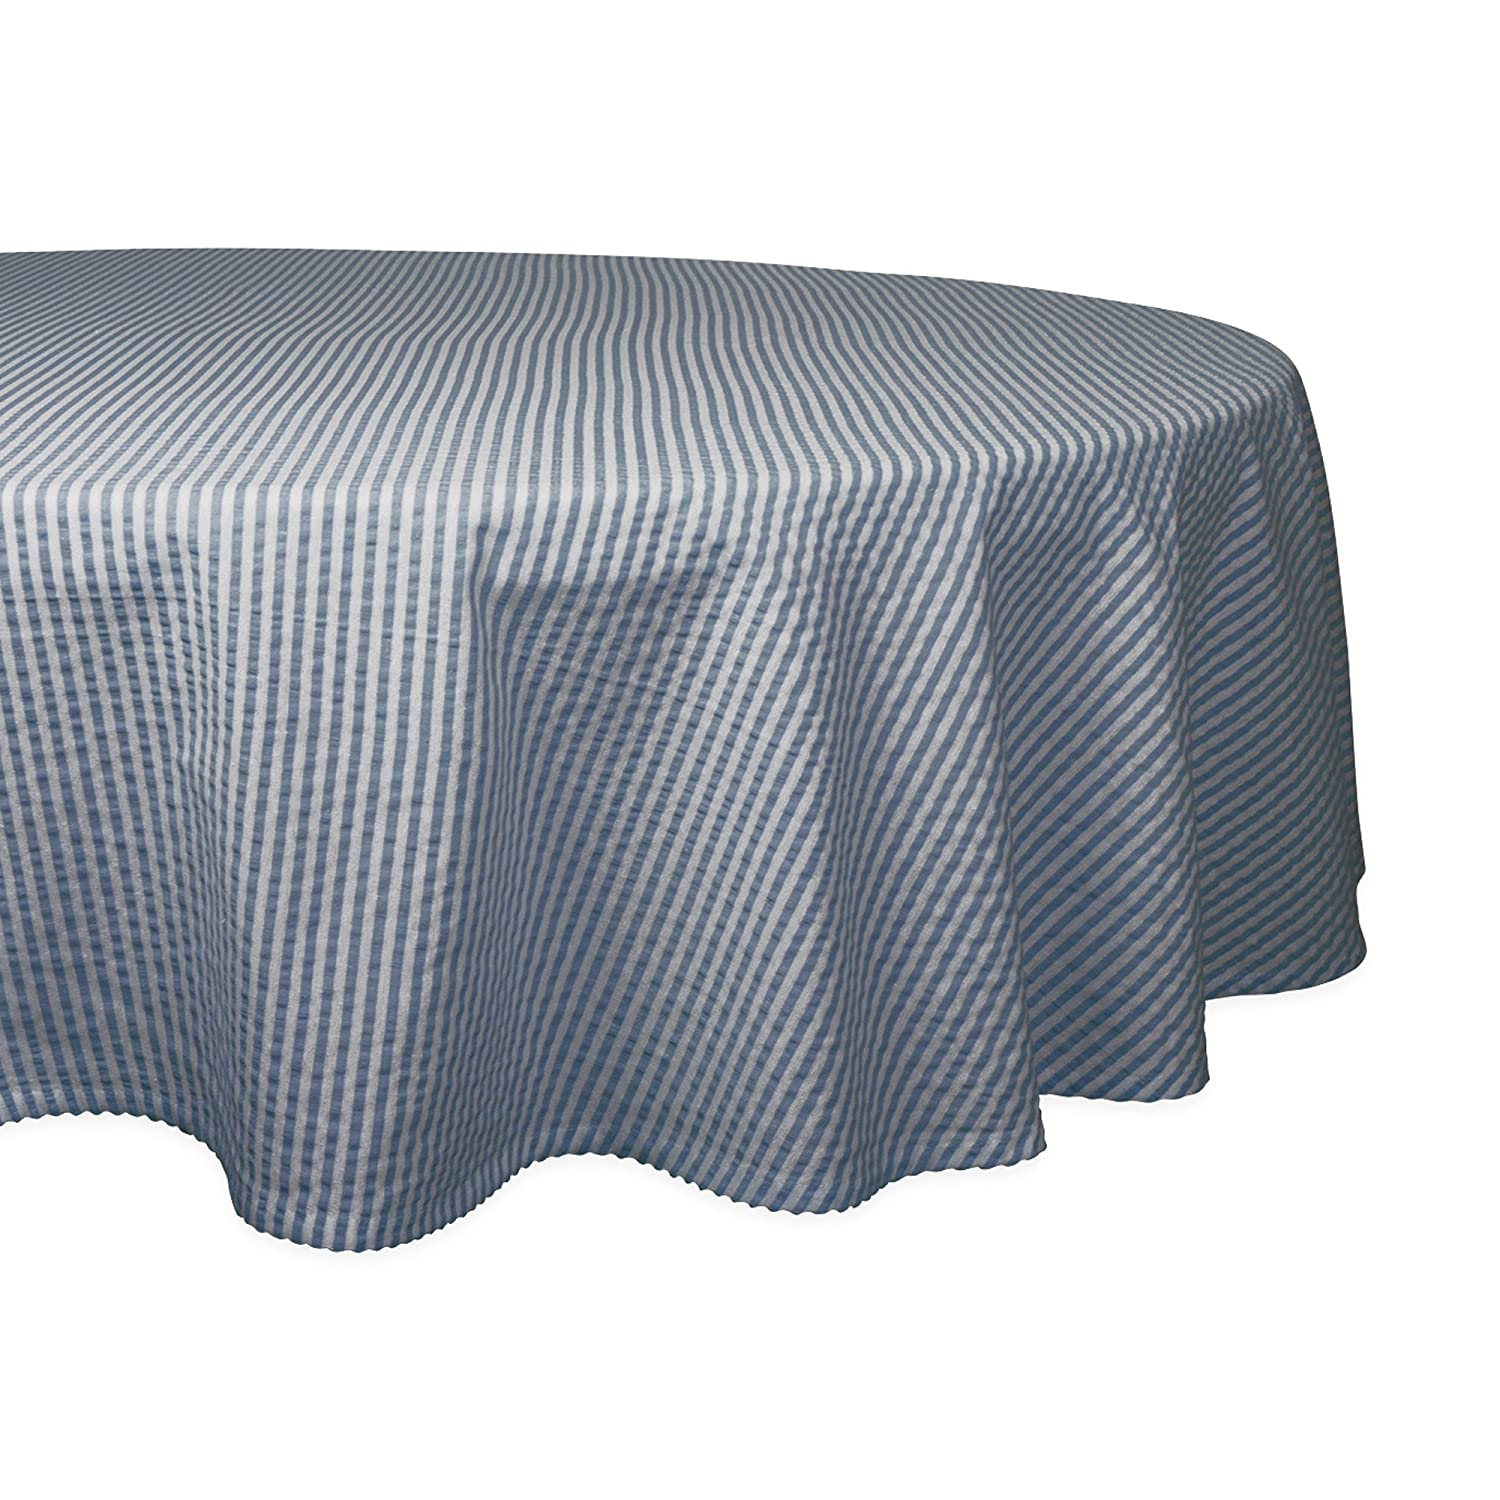 """DII Otton Seersucker Striped Tablecloth for Weddings, Picnics, Summer Parties and Everyday Use, 70"""" Round, French Blue and White"""